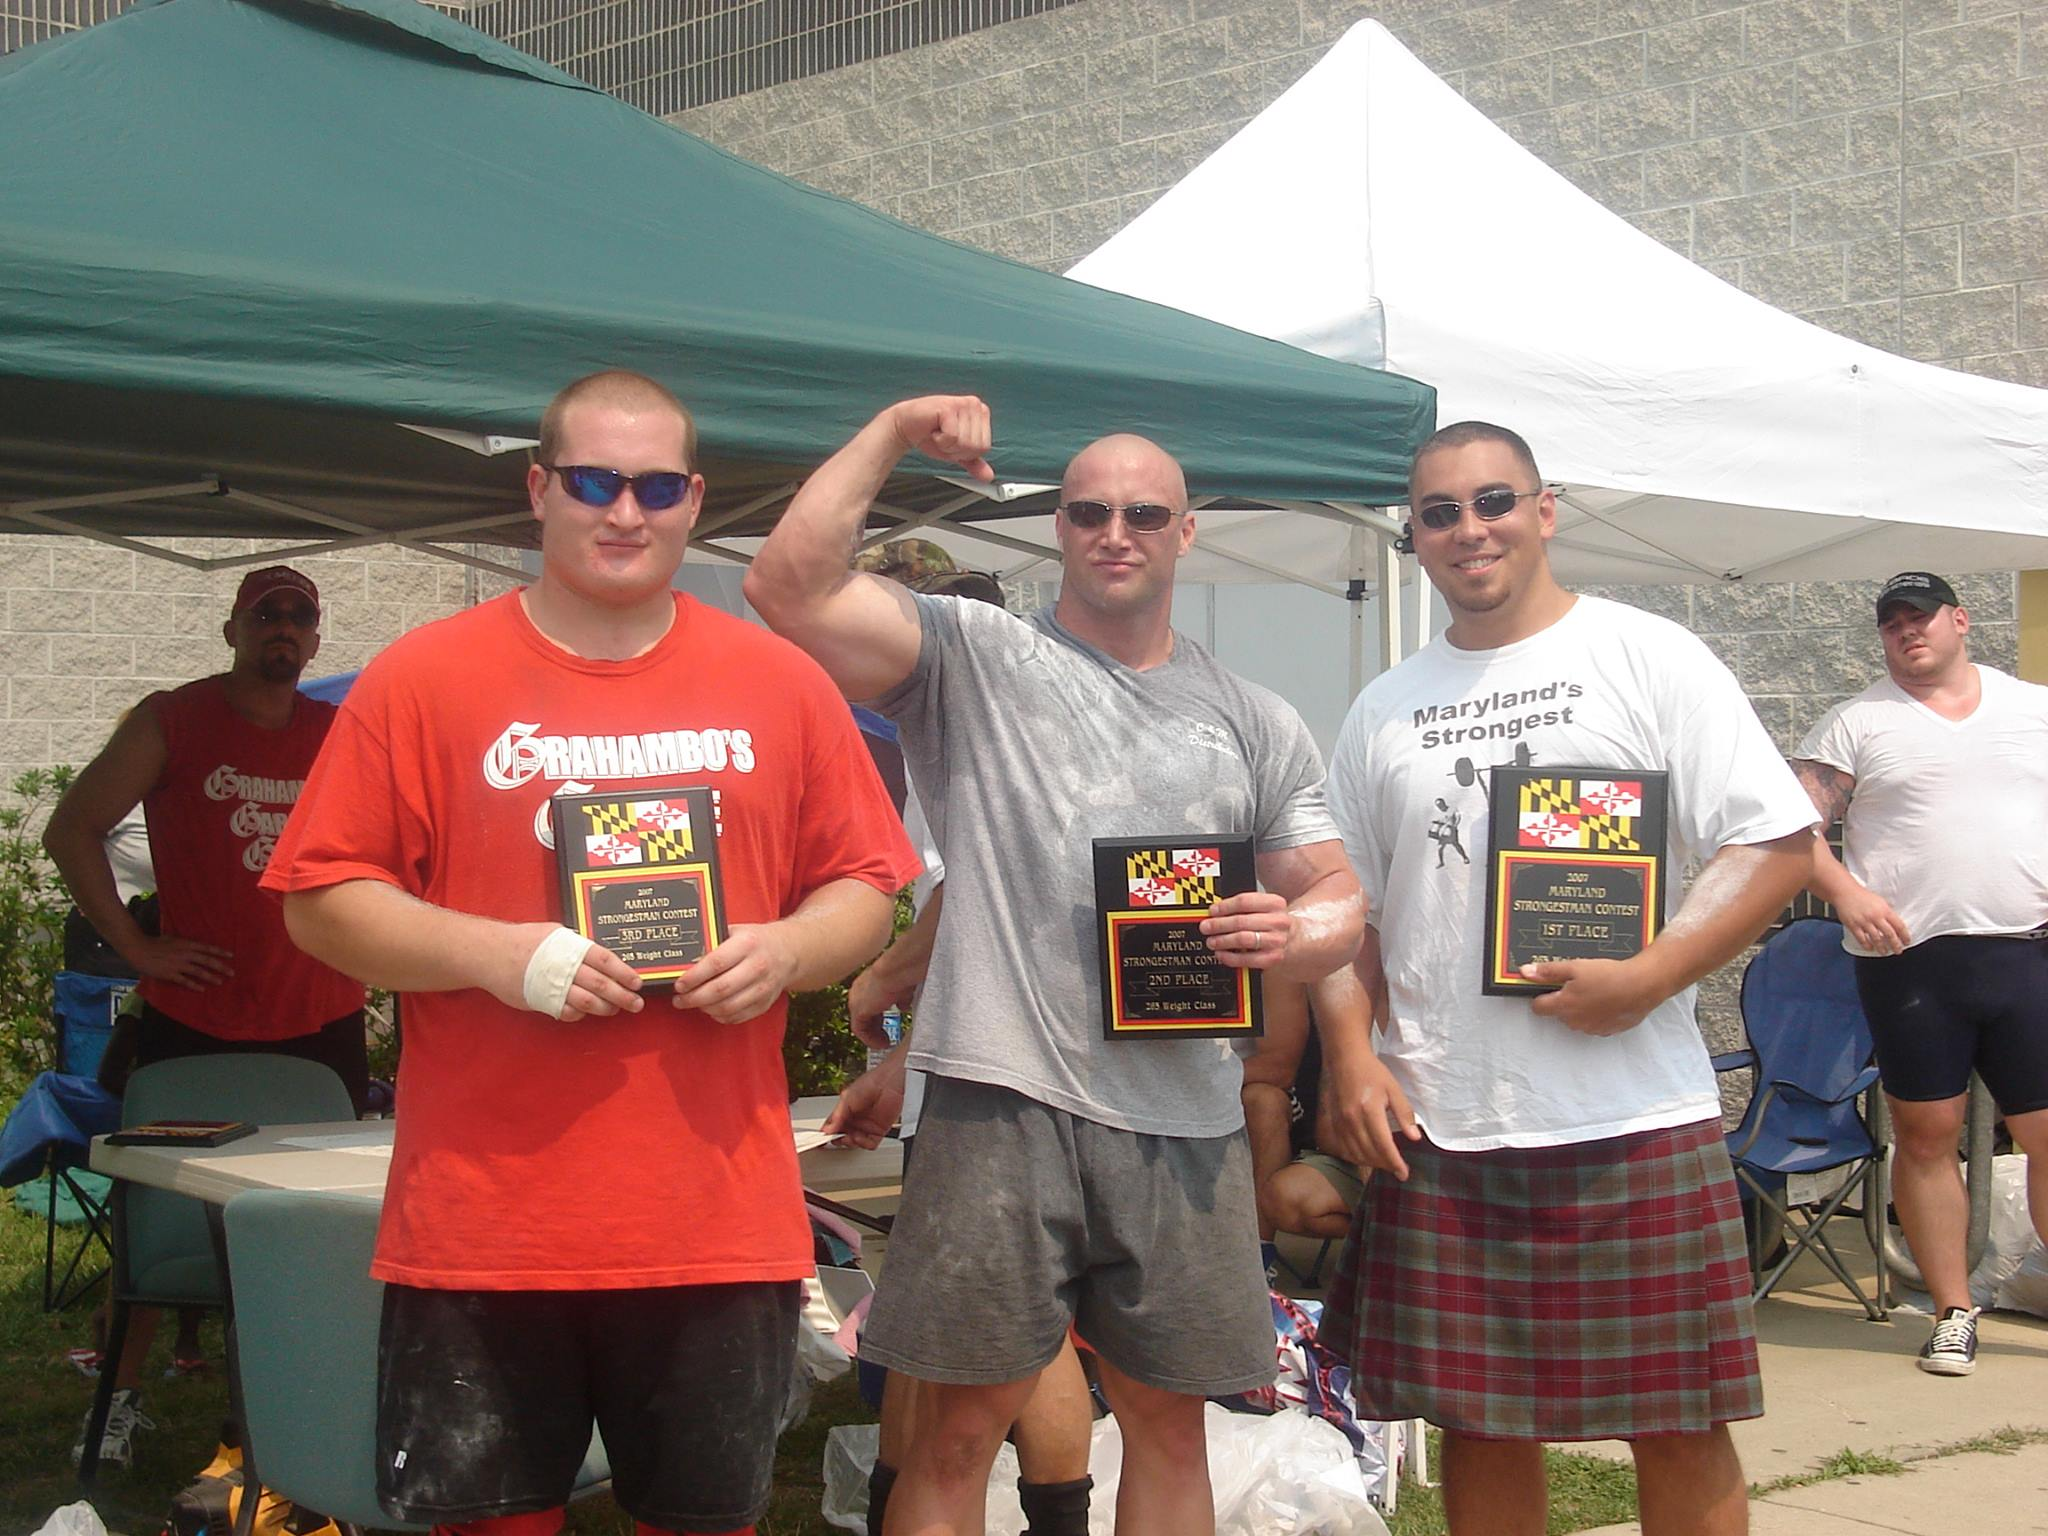 2007 Maryland Strongman winners